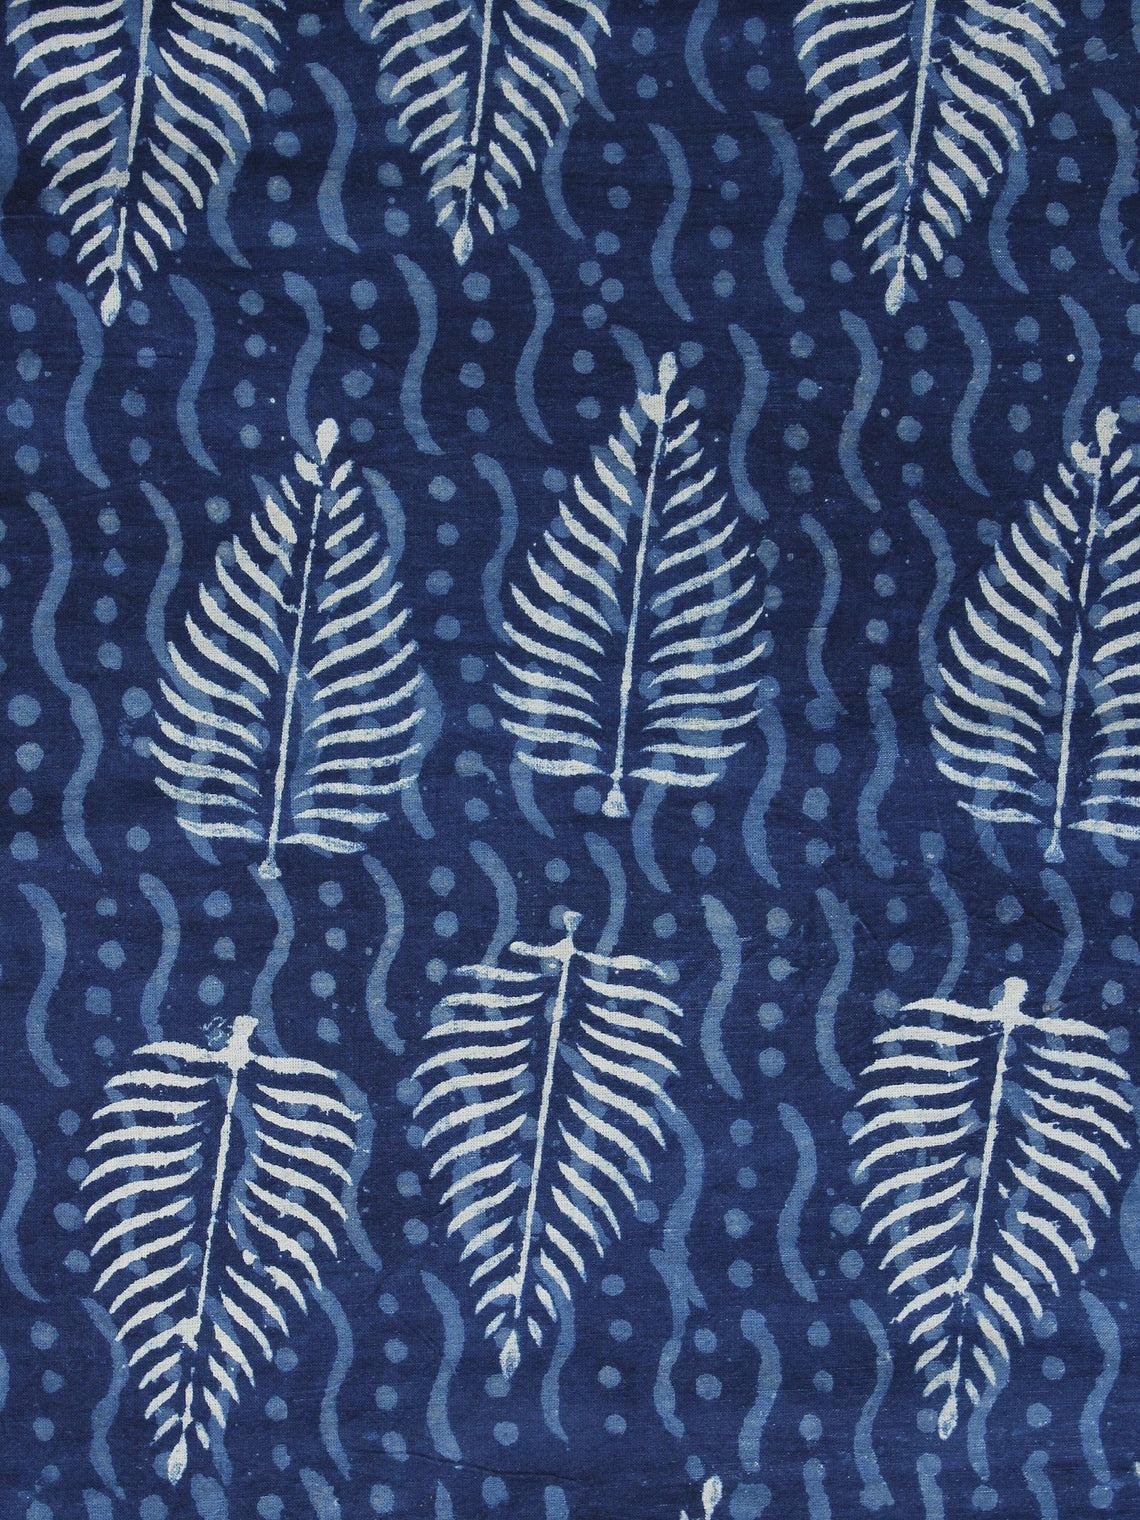 Indigo Blue White Hand Block Printed Cotton Fabric Per Meter - F001F1115